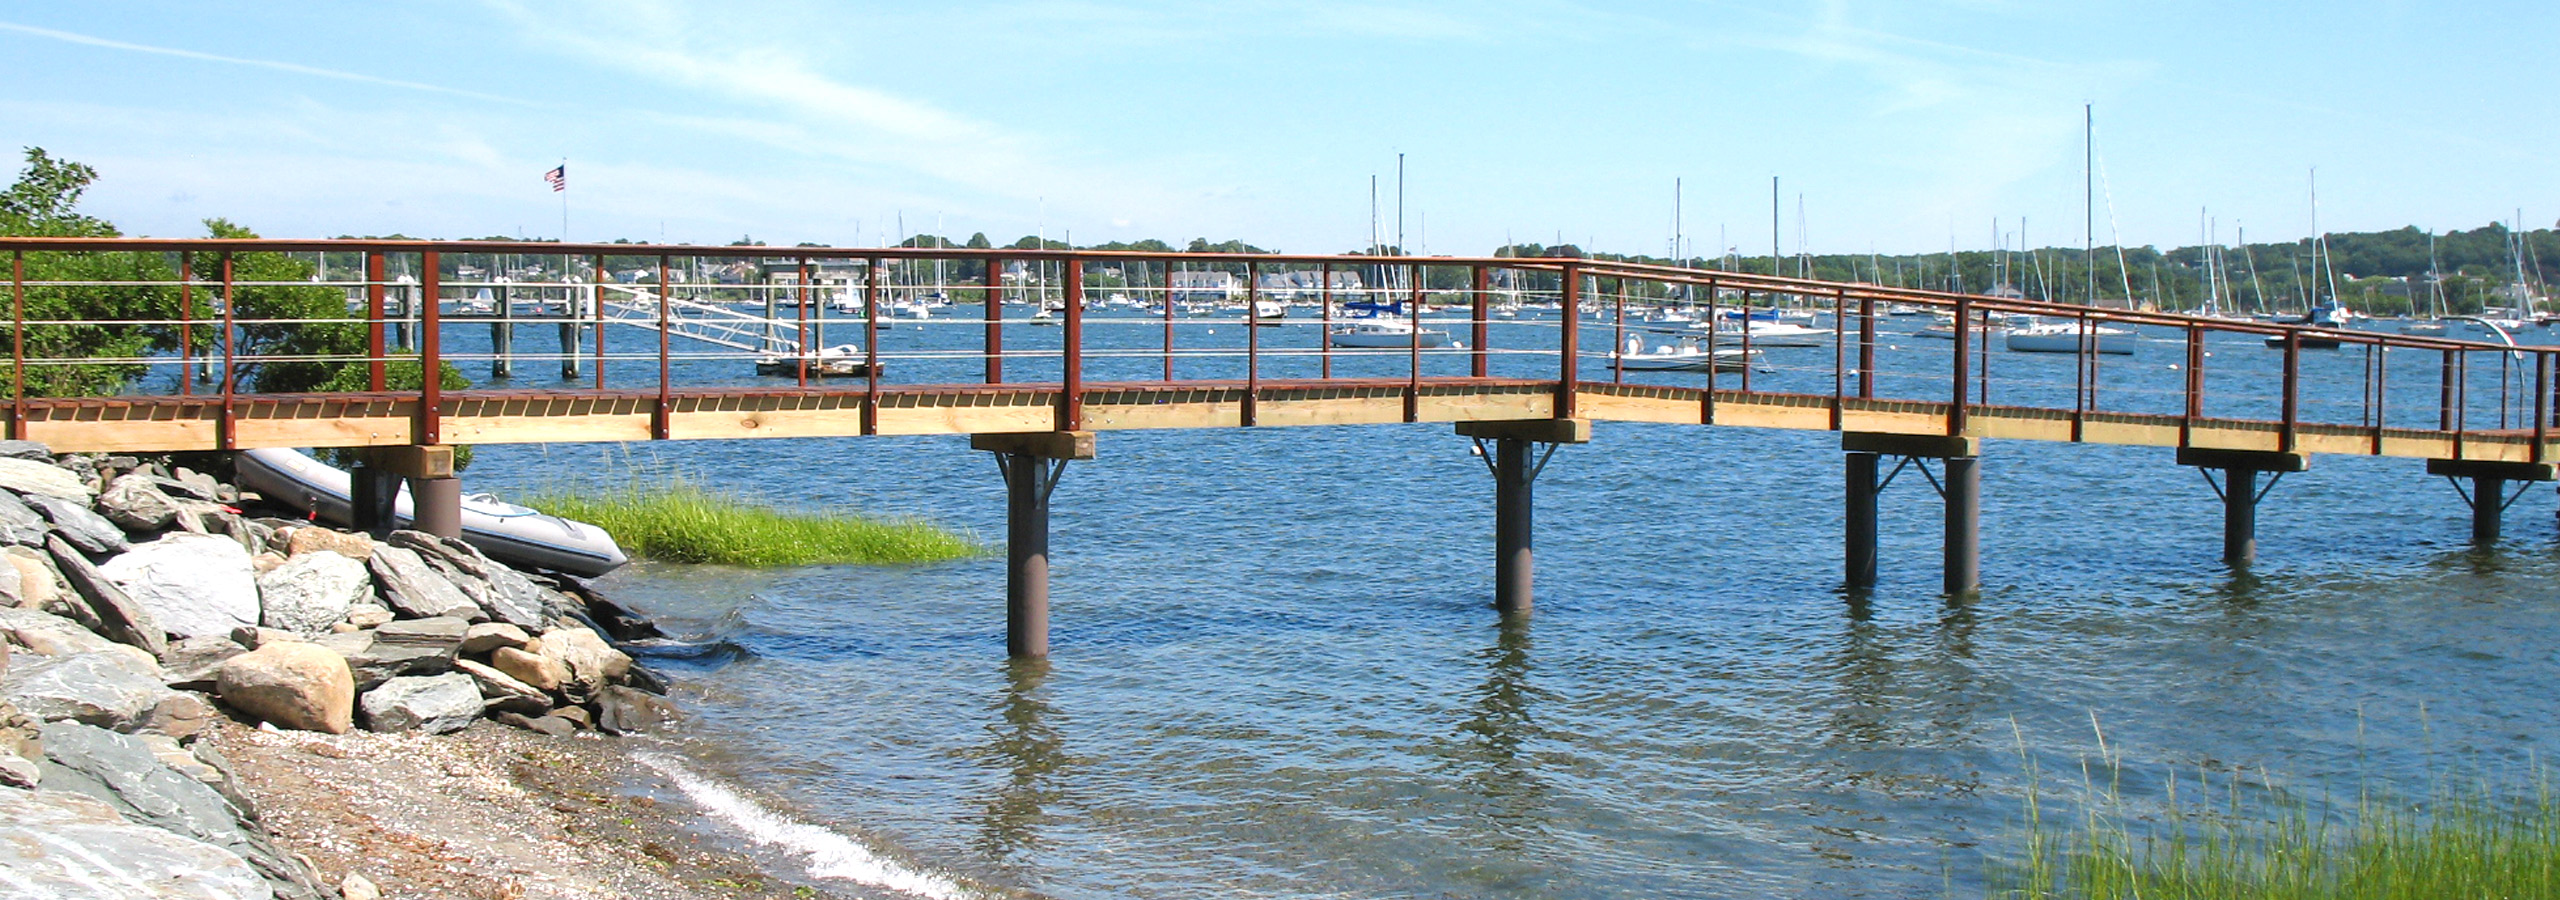 Pearson pilings fiberglass composite pilings waterfront for Dock pilings cost